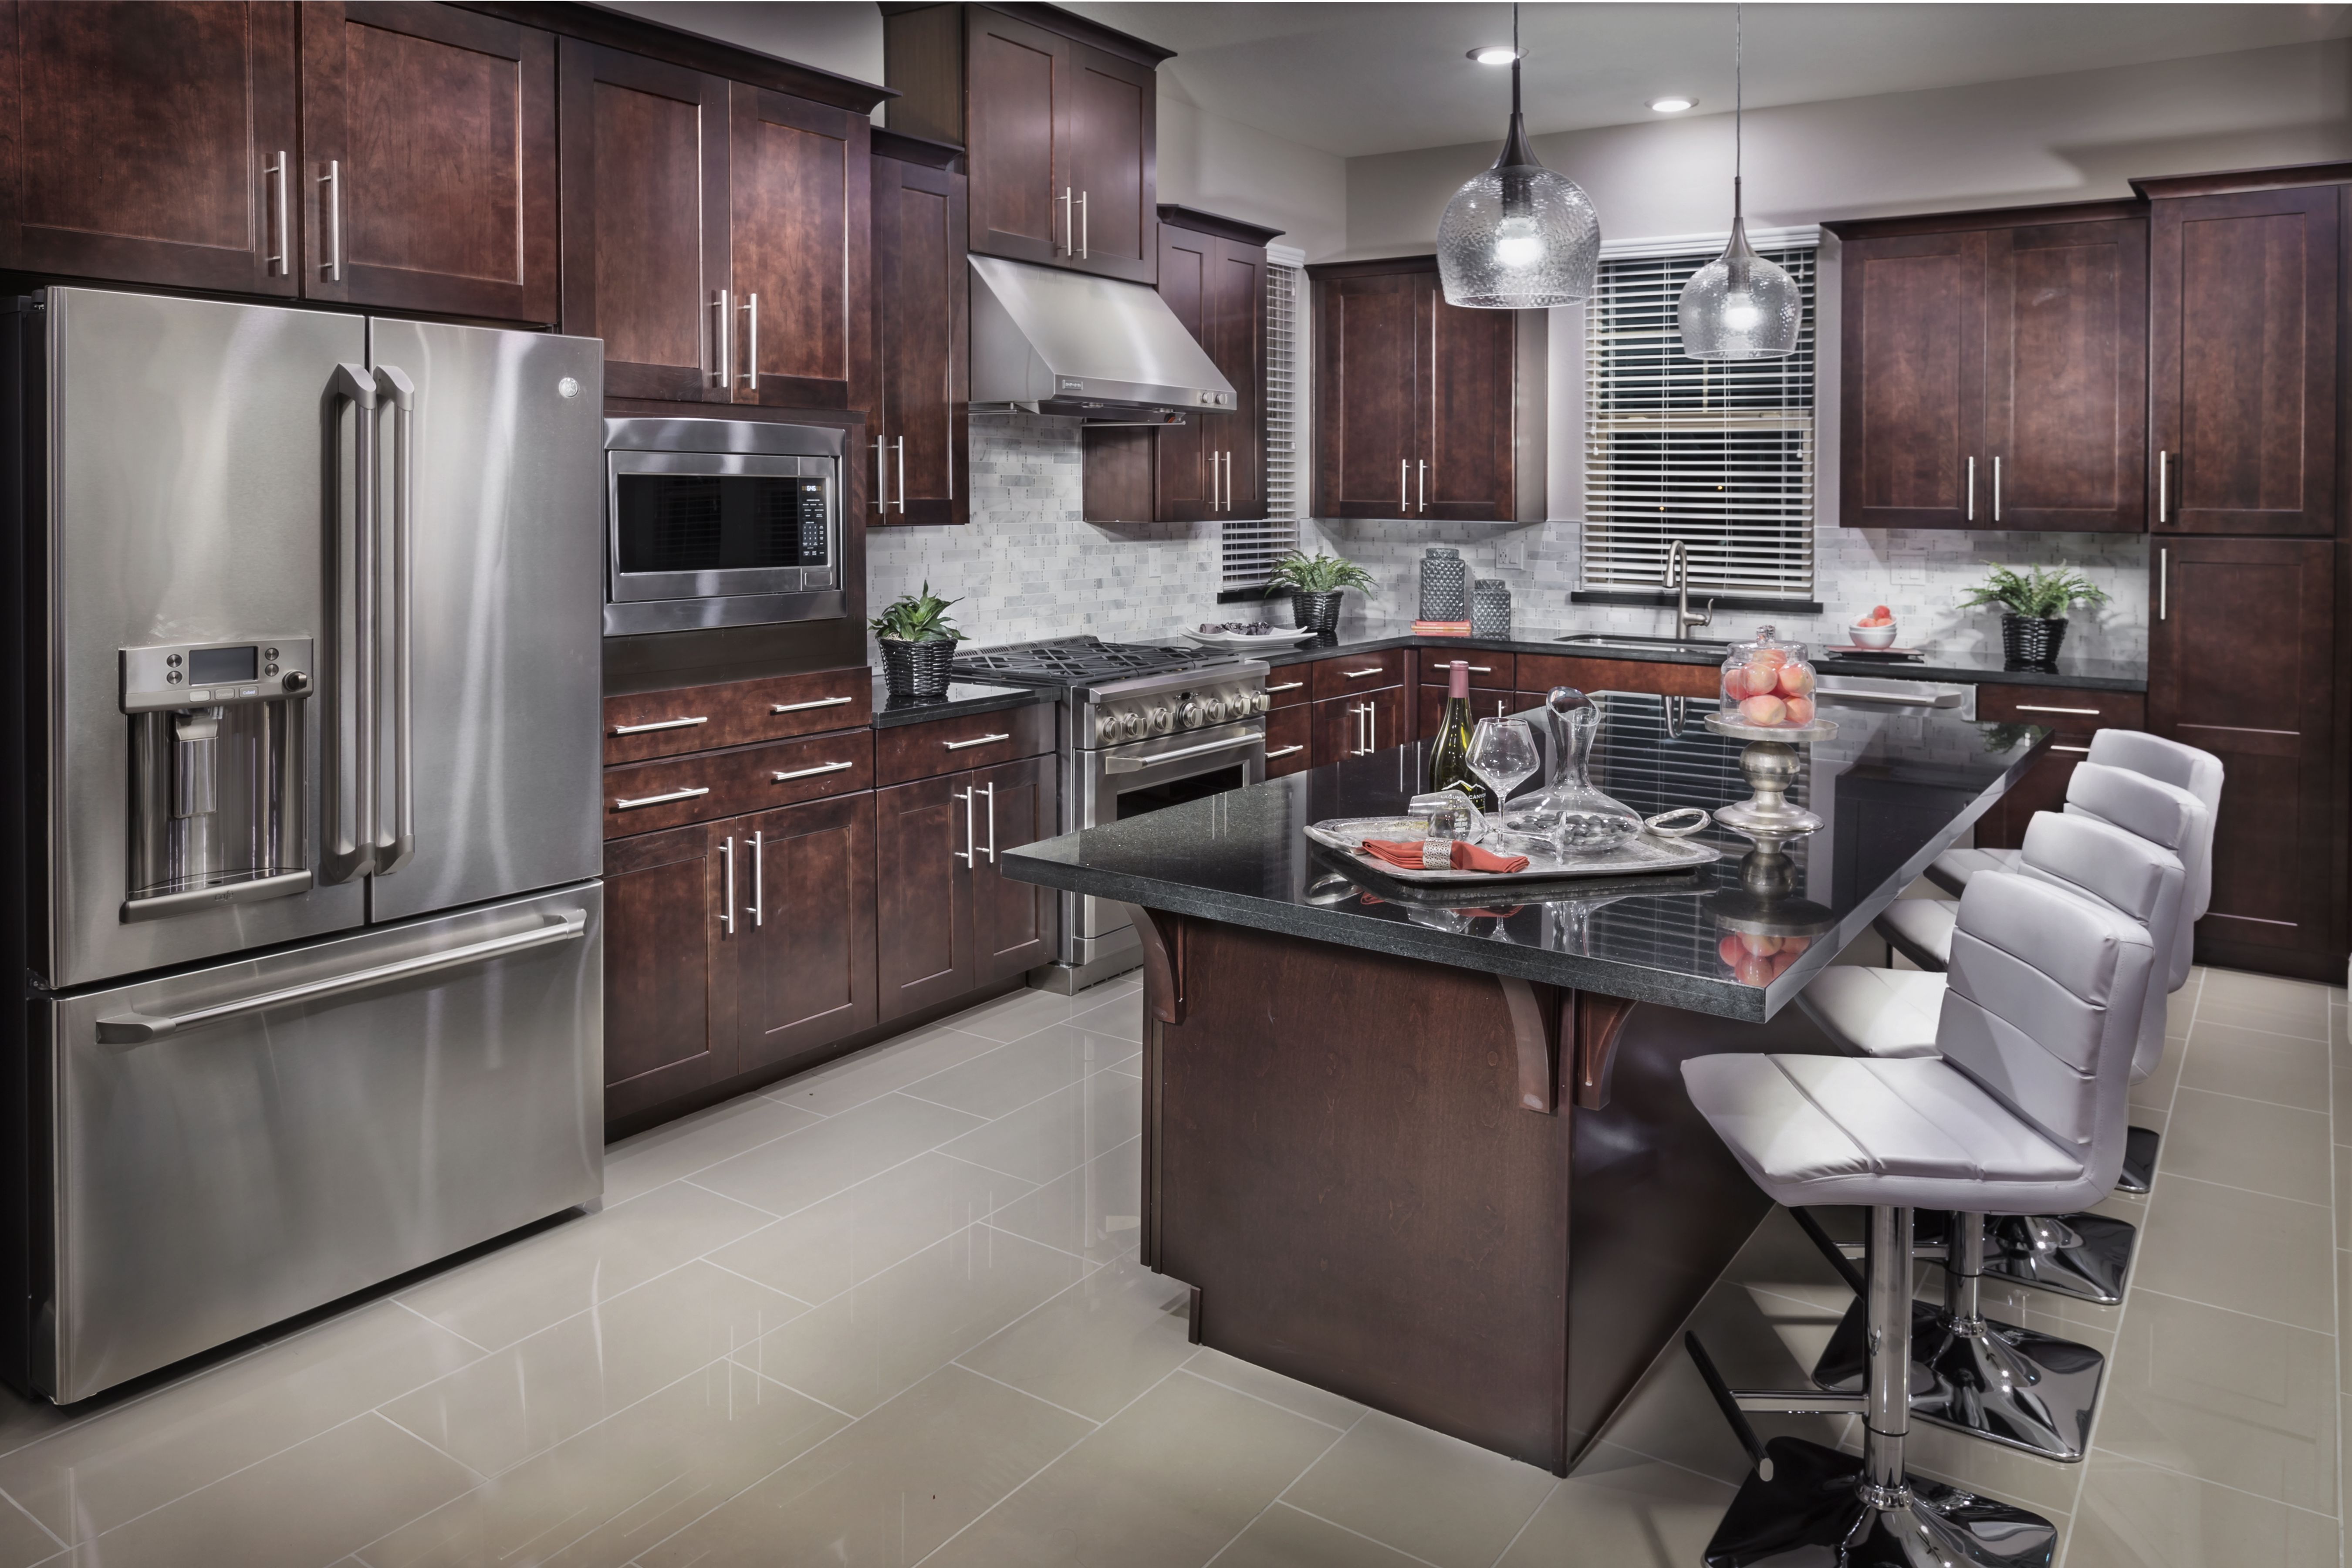 Luxury Kitchen Renovations Remodeling Services In Houston Tx Bay Area Kitchens Kitchen Renovation Luxury Kitchen Kitchen Design